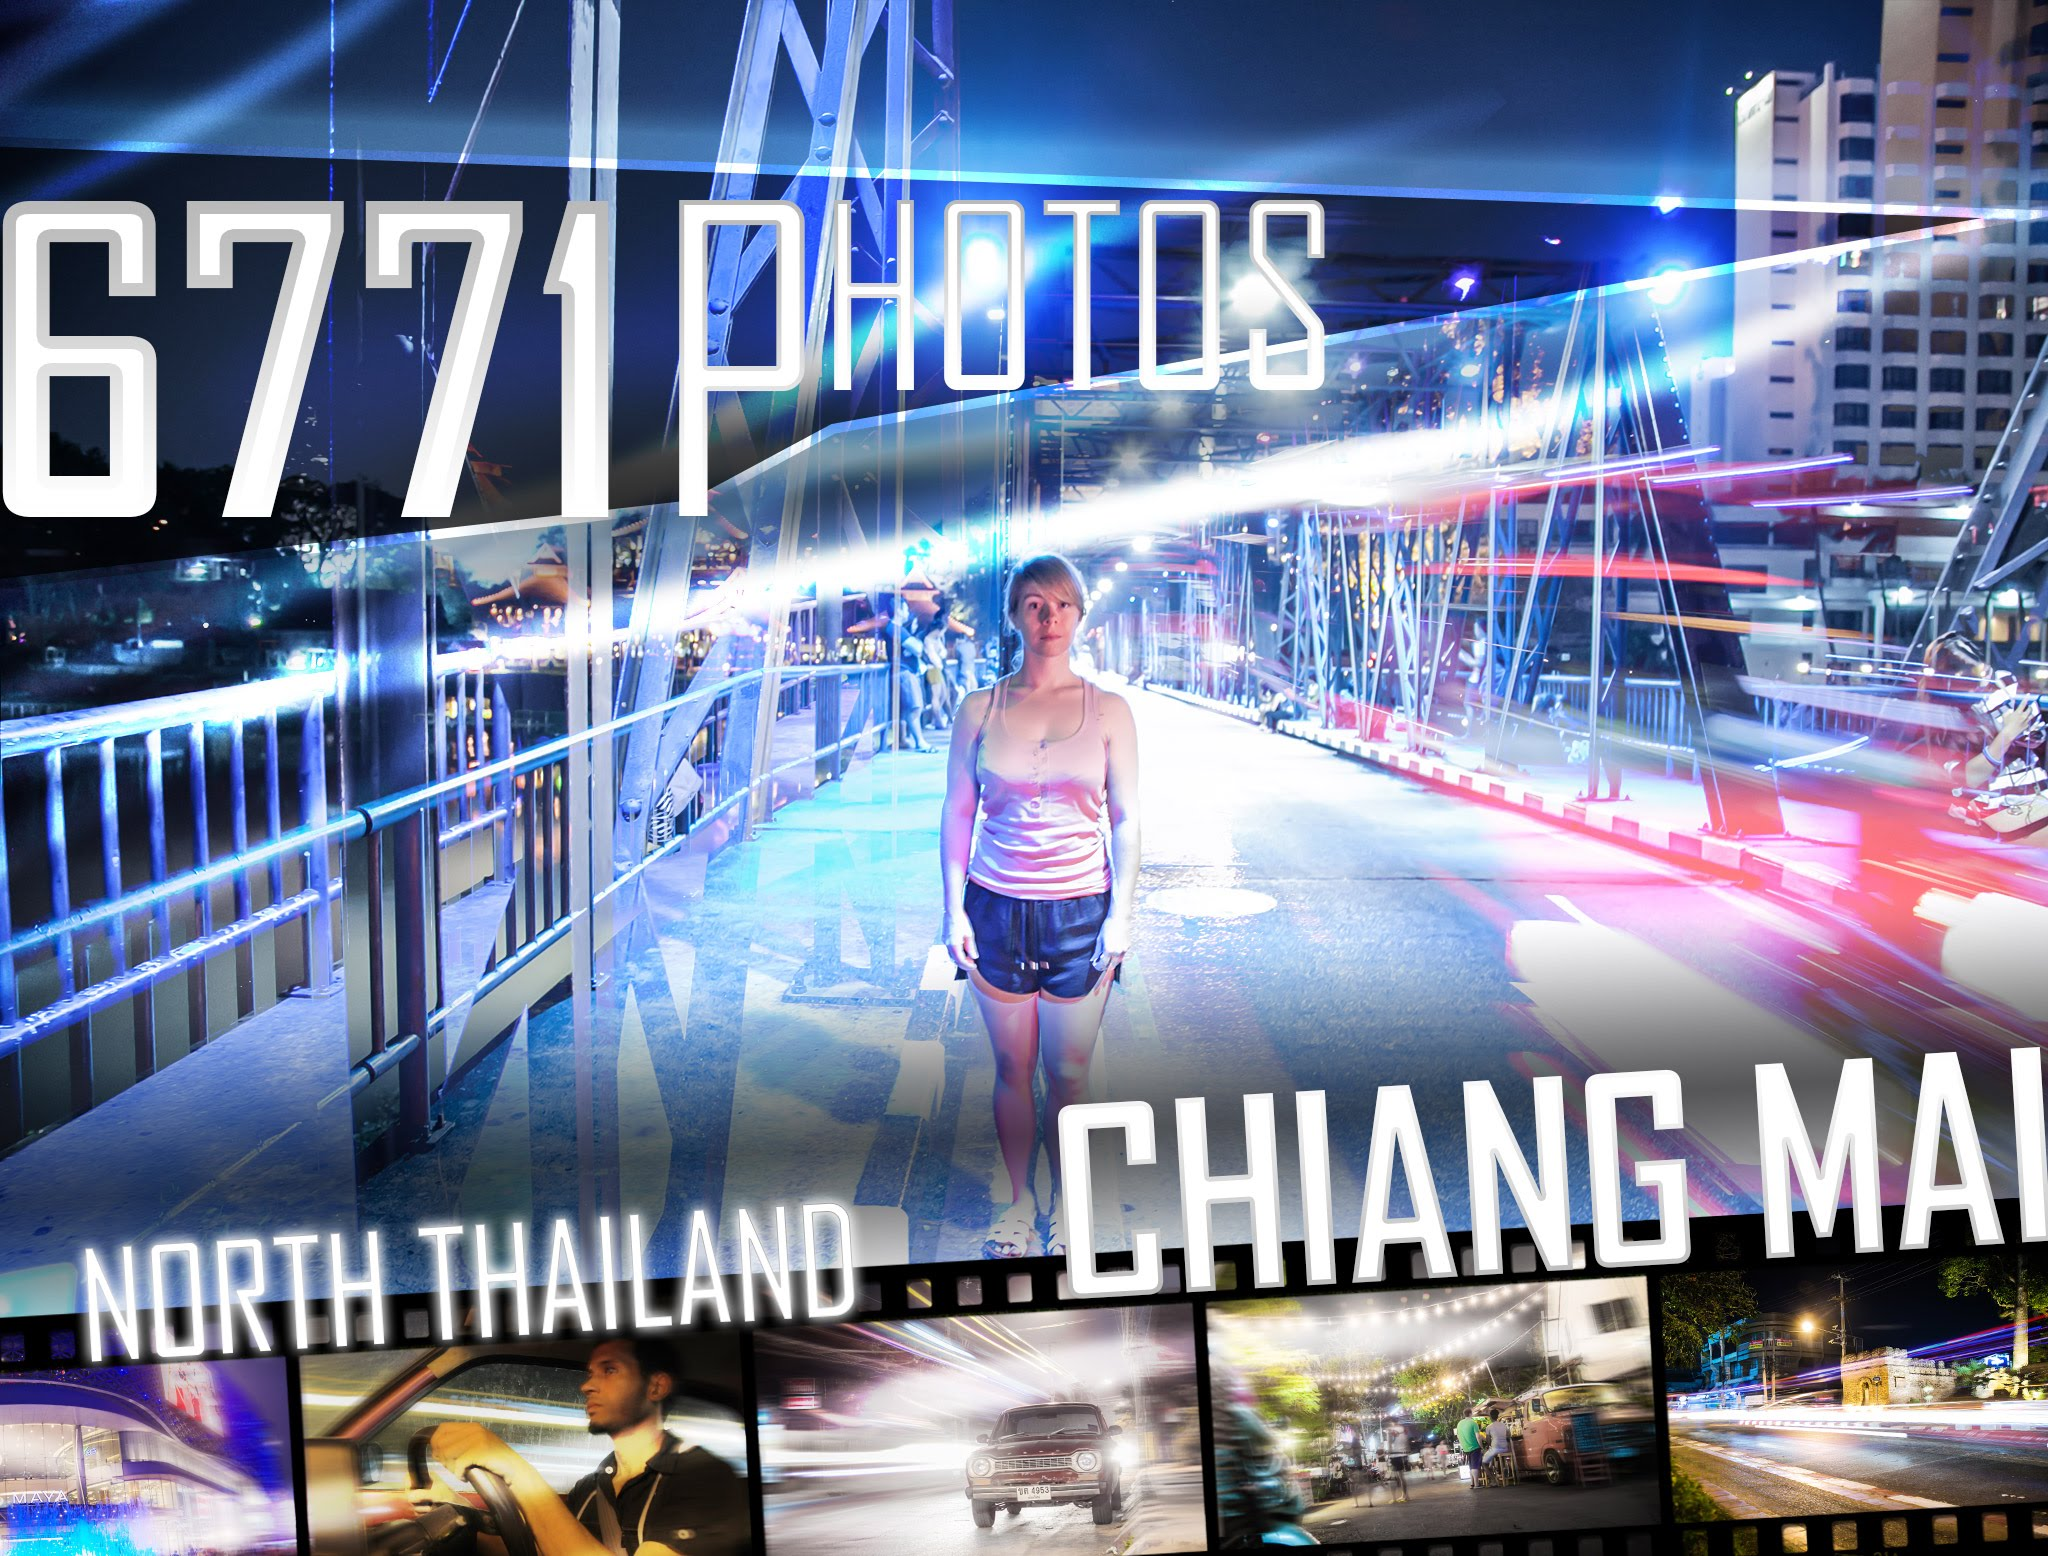 We took 6771 PHOTOS OF CHIANG MAI & NORTH THAILAND